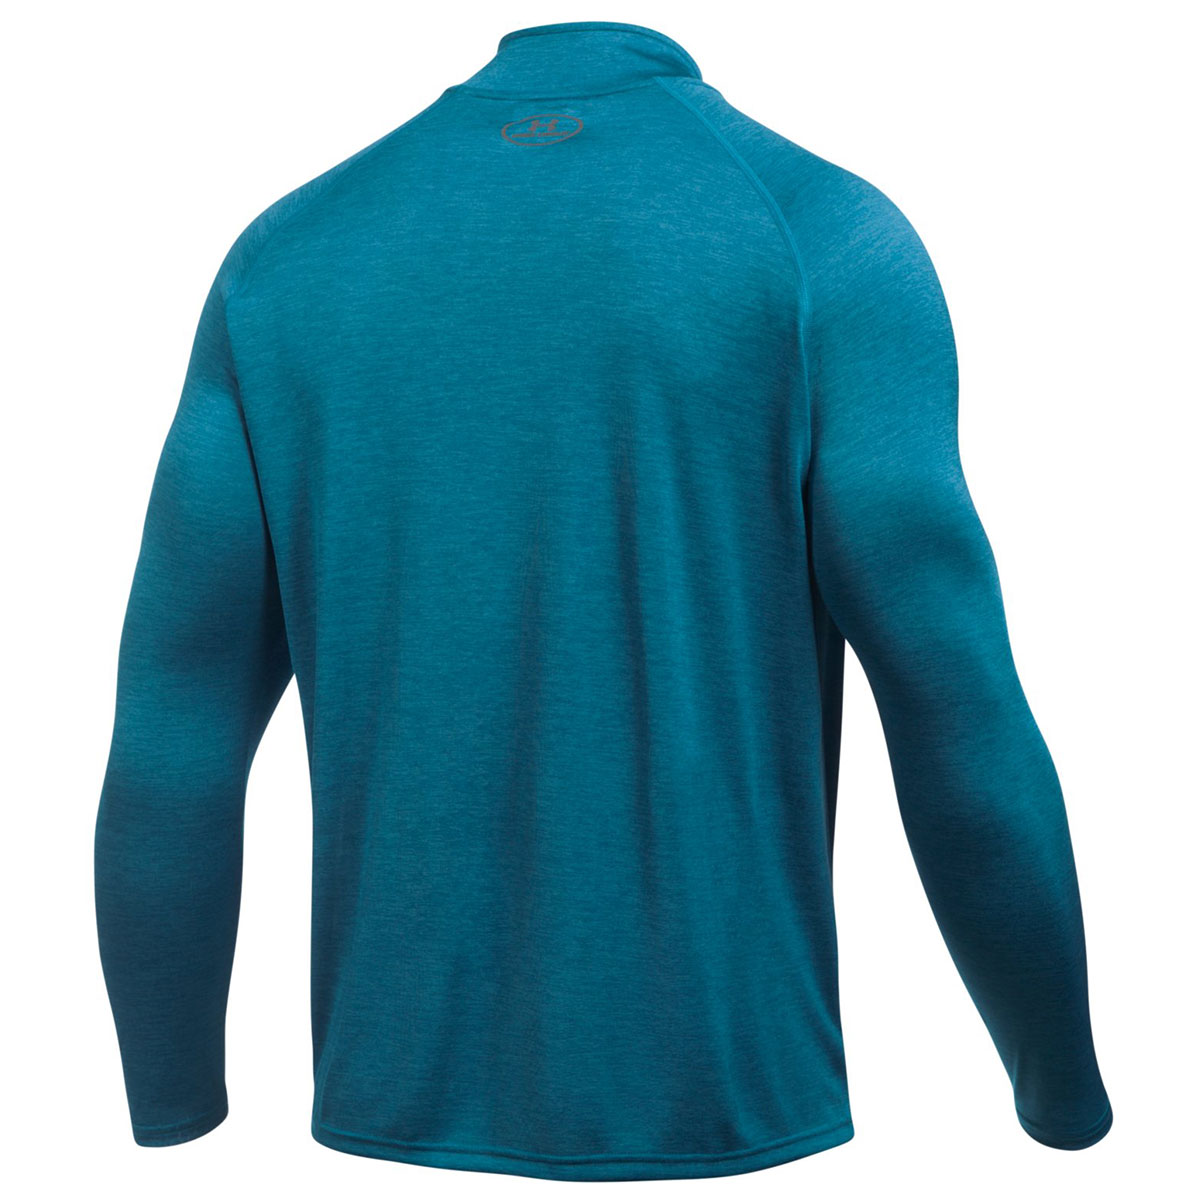 Under-Armour-Mens-UA-Tech-1-4-Zip-Long-Sleeve-Top-Workout-Layer-27-OFF-RRP thumbnail 13